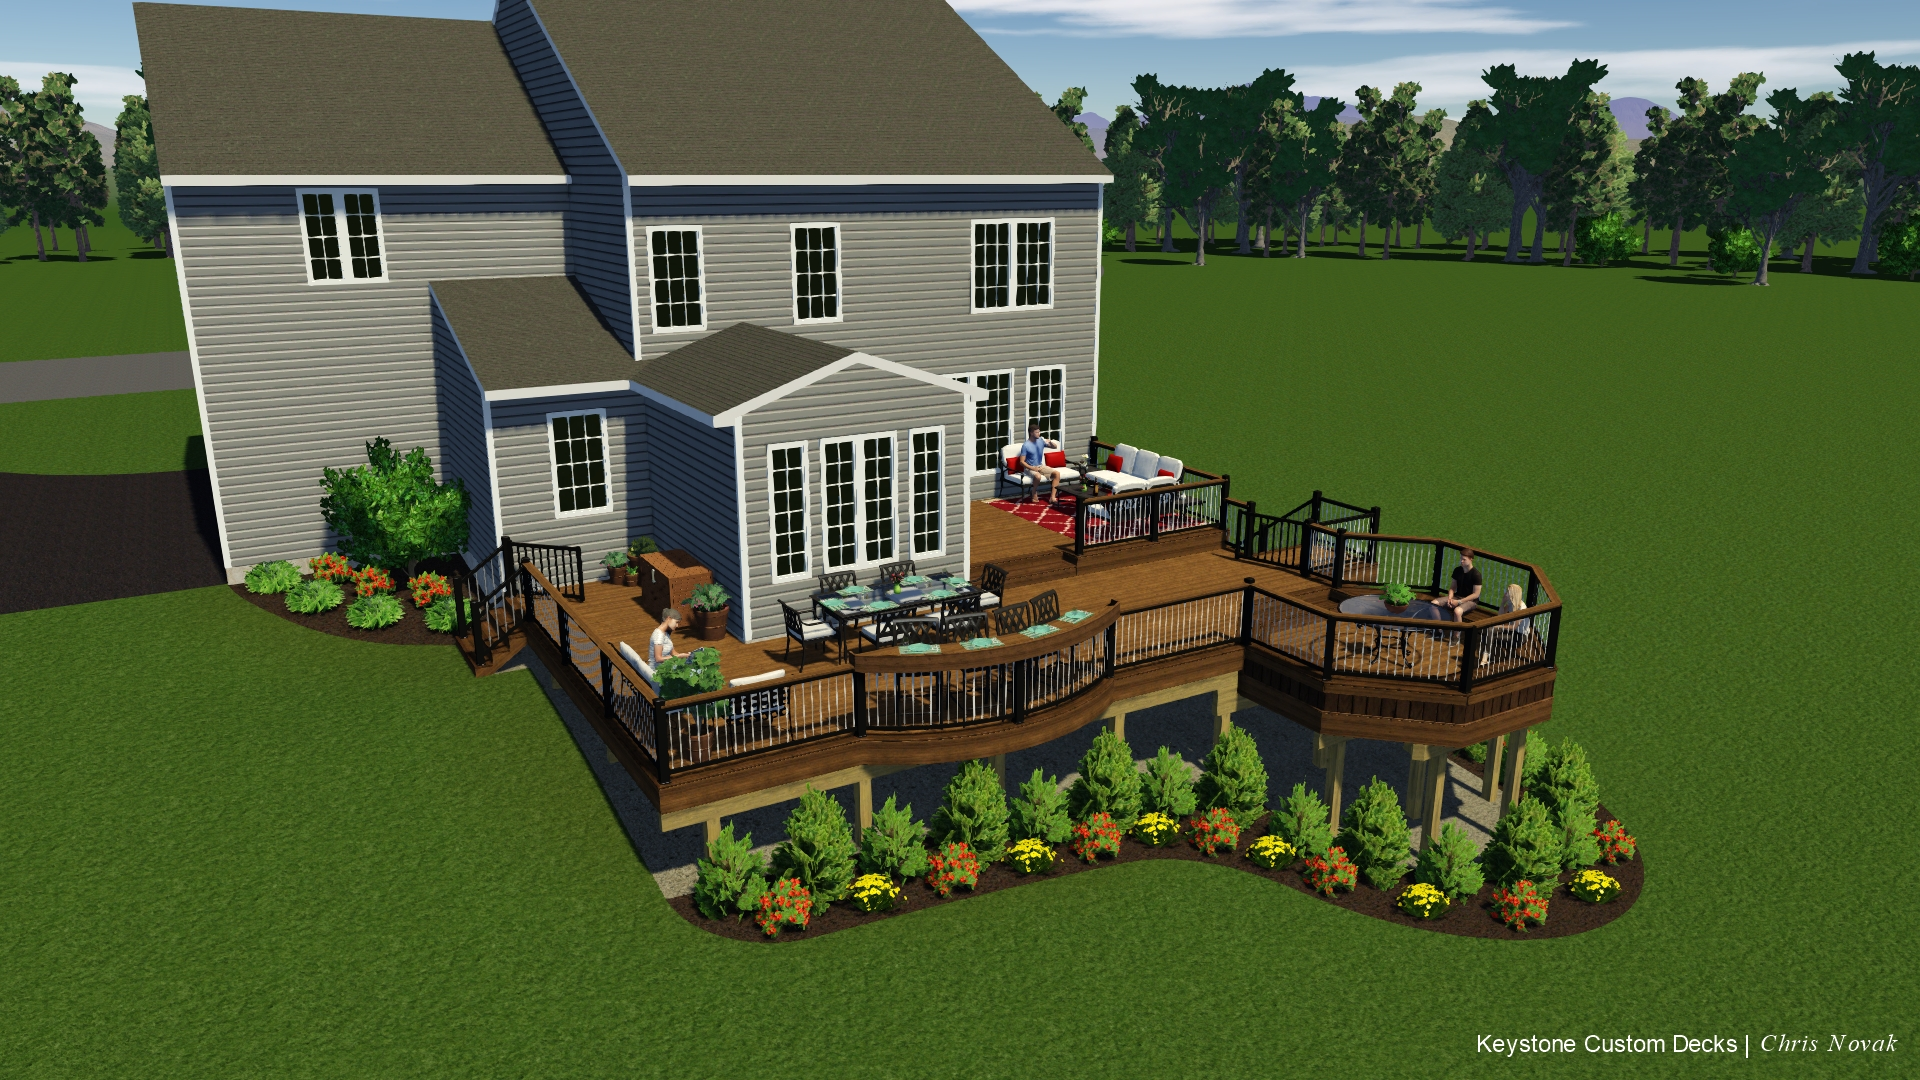 Amazing contractor experience here 39 s my deck build - Home expo design center locations ...